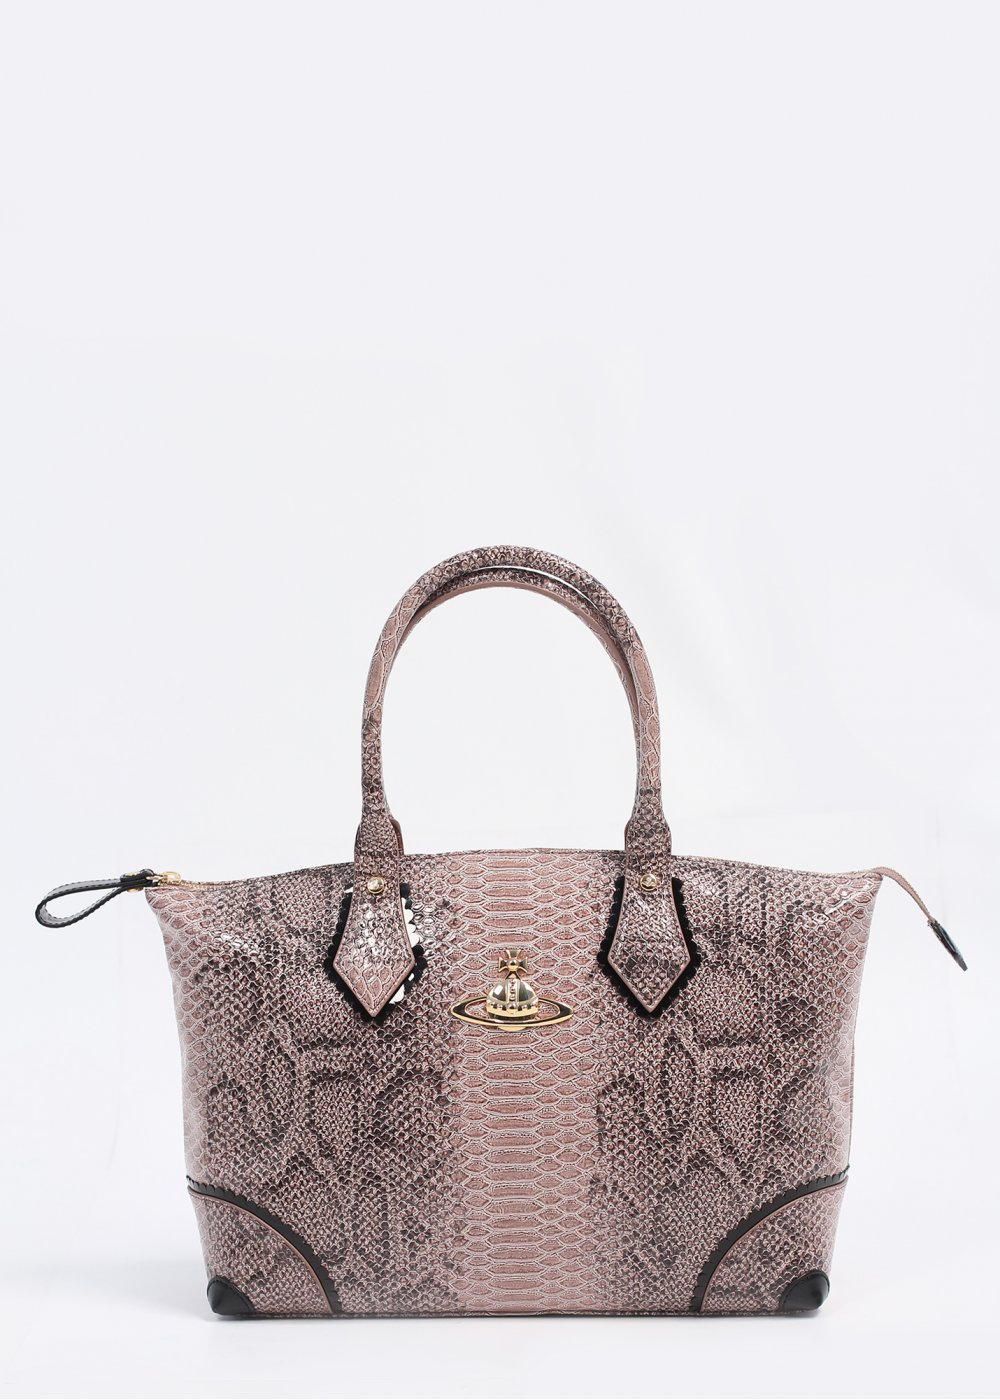 Vivienne Westwood Accessories Frilly Snake Bag Beige, AW13.